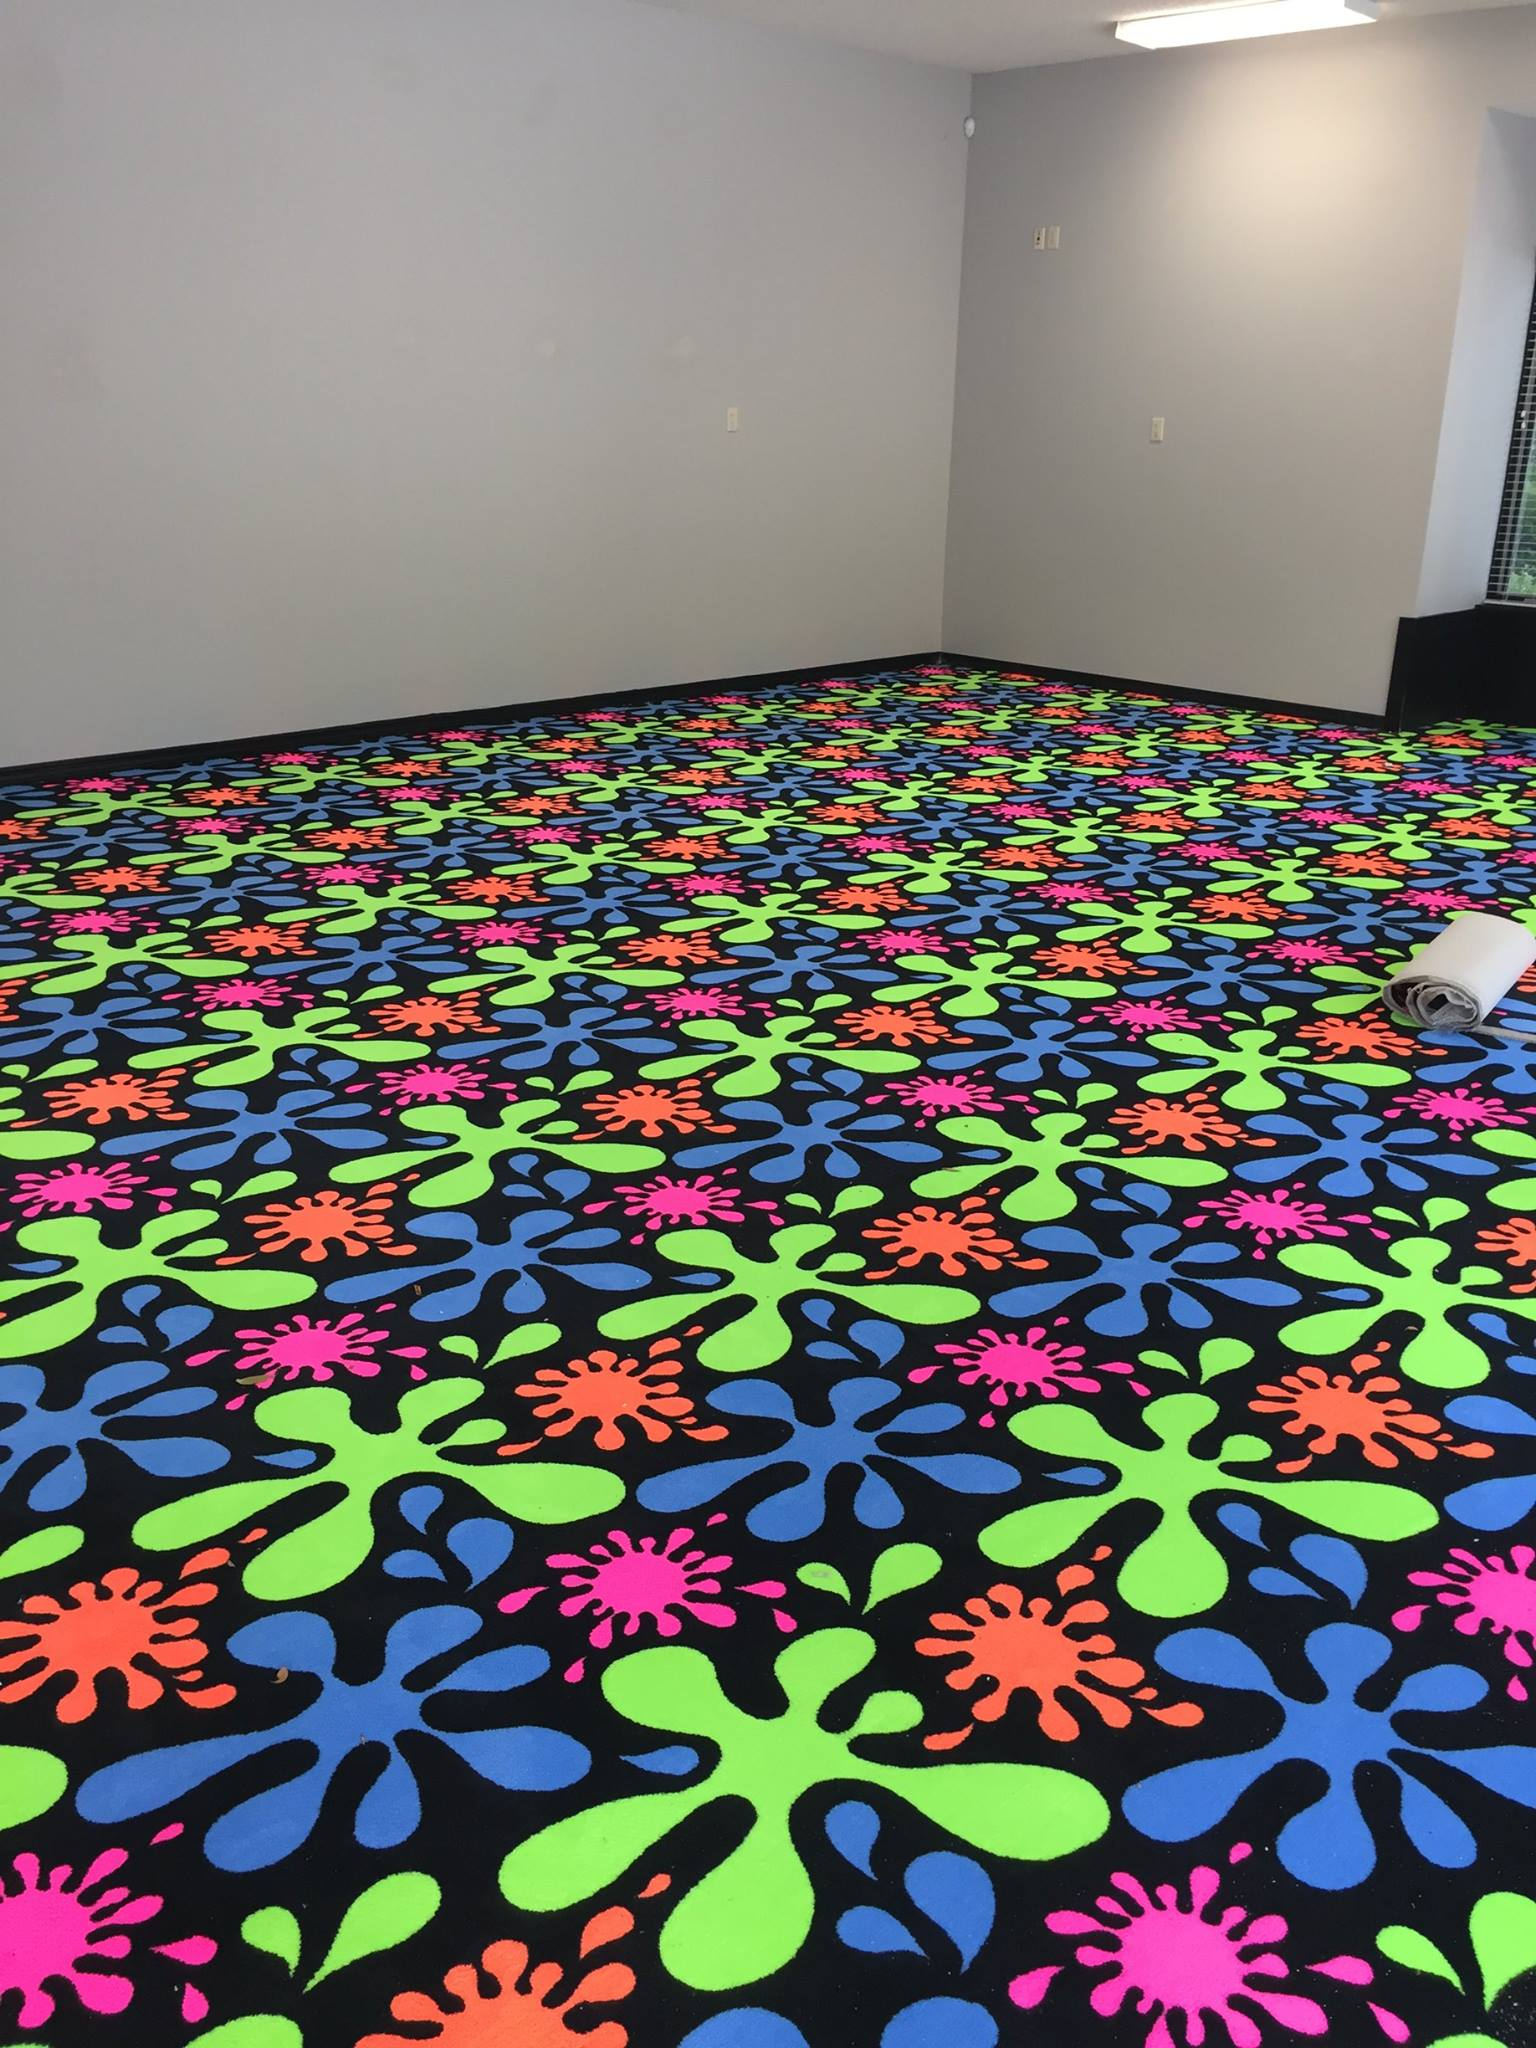 Glue Down Carpet